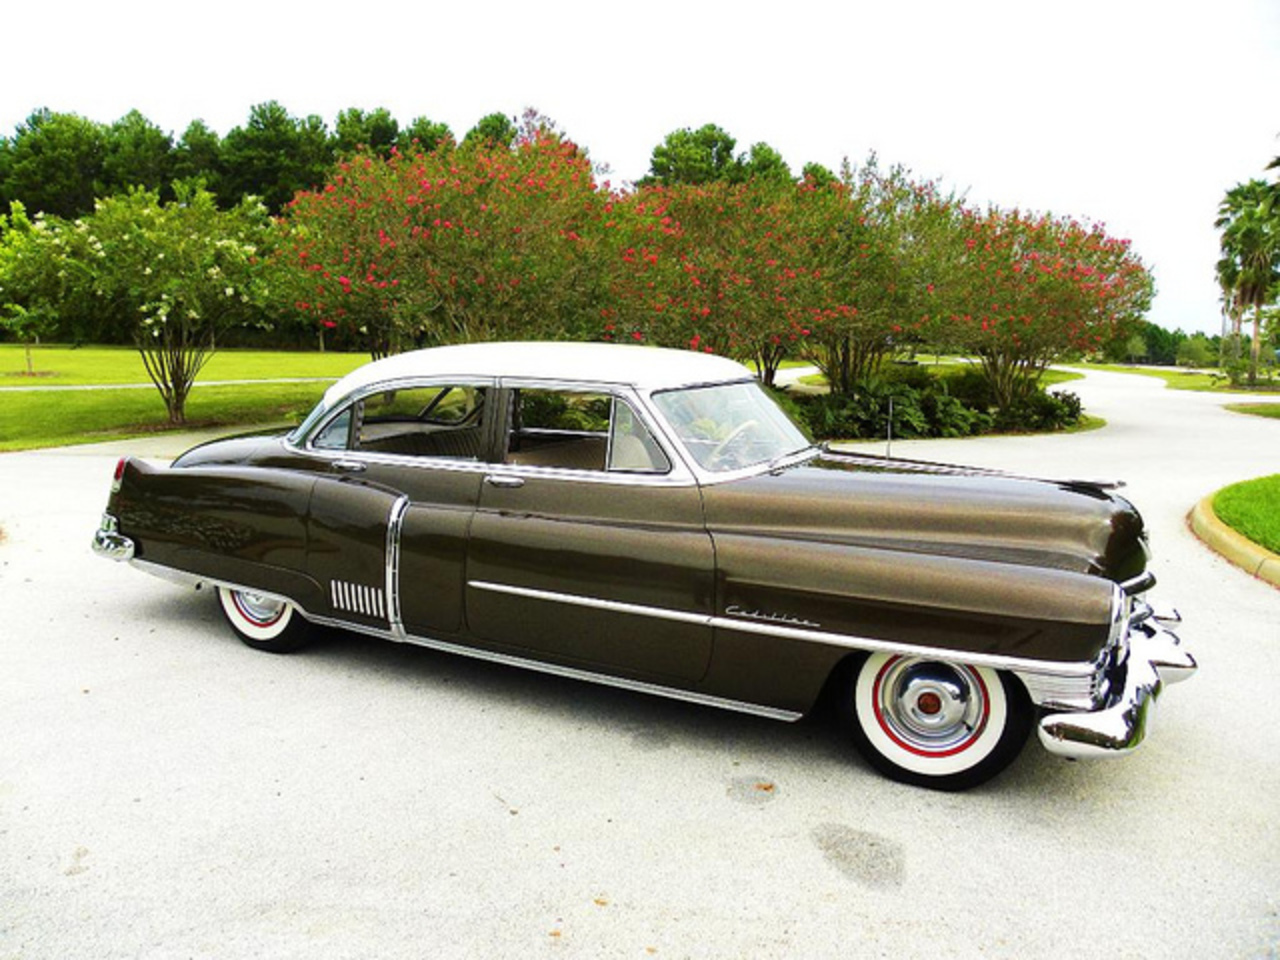 1951 Cadillac Fleetwood 60 Special | Flickr - Photo Sharing!